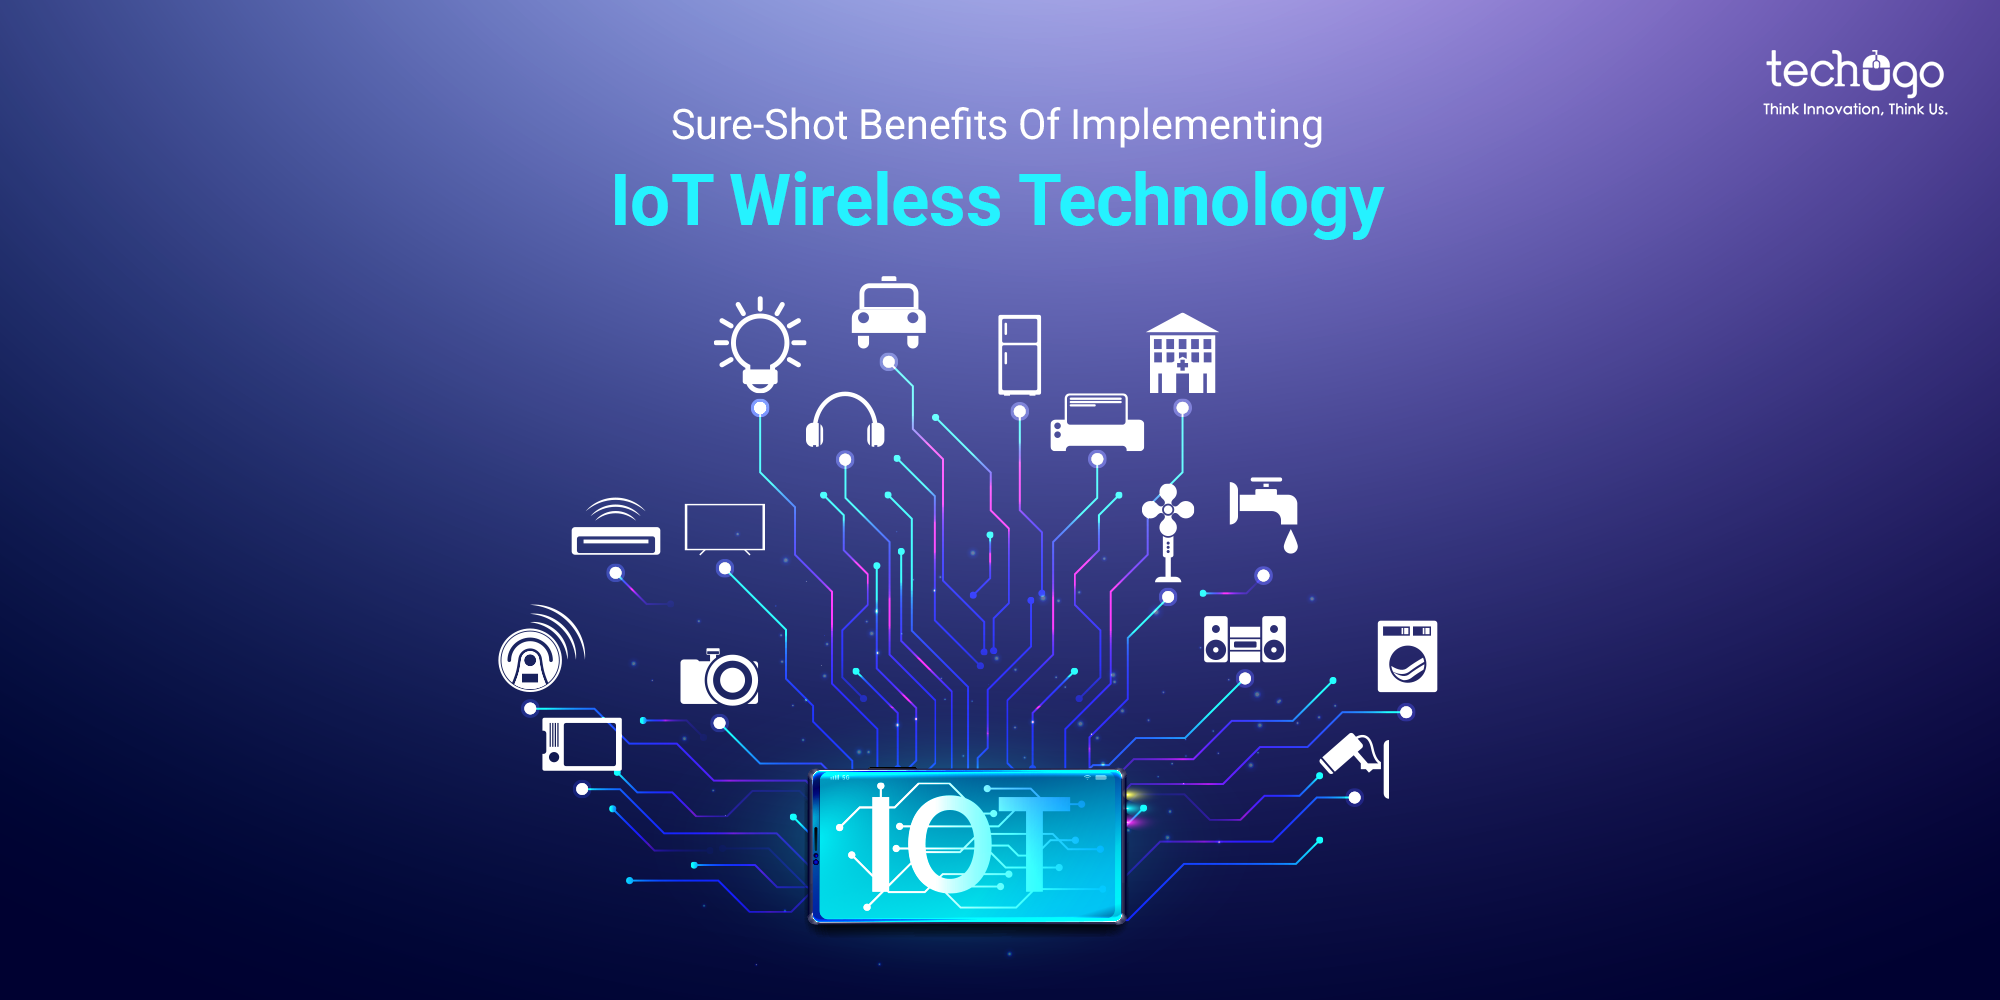 iot.do - Sure-Shot Benefits Of Implementing Iot Wireless Technology